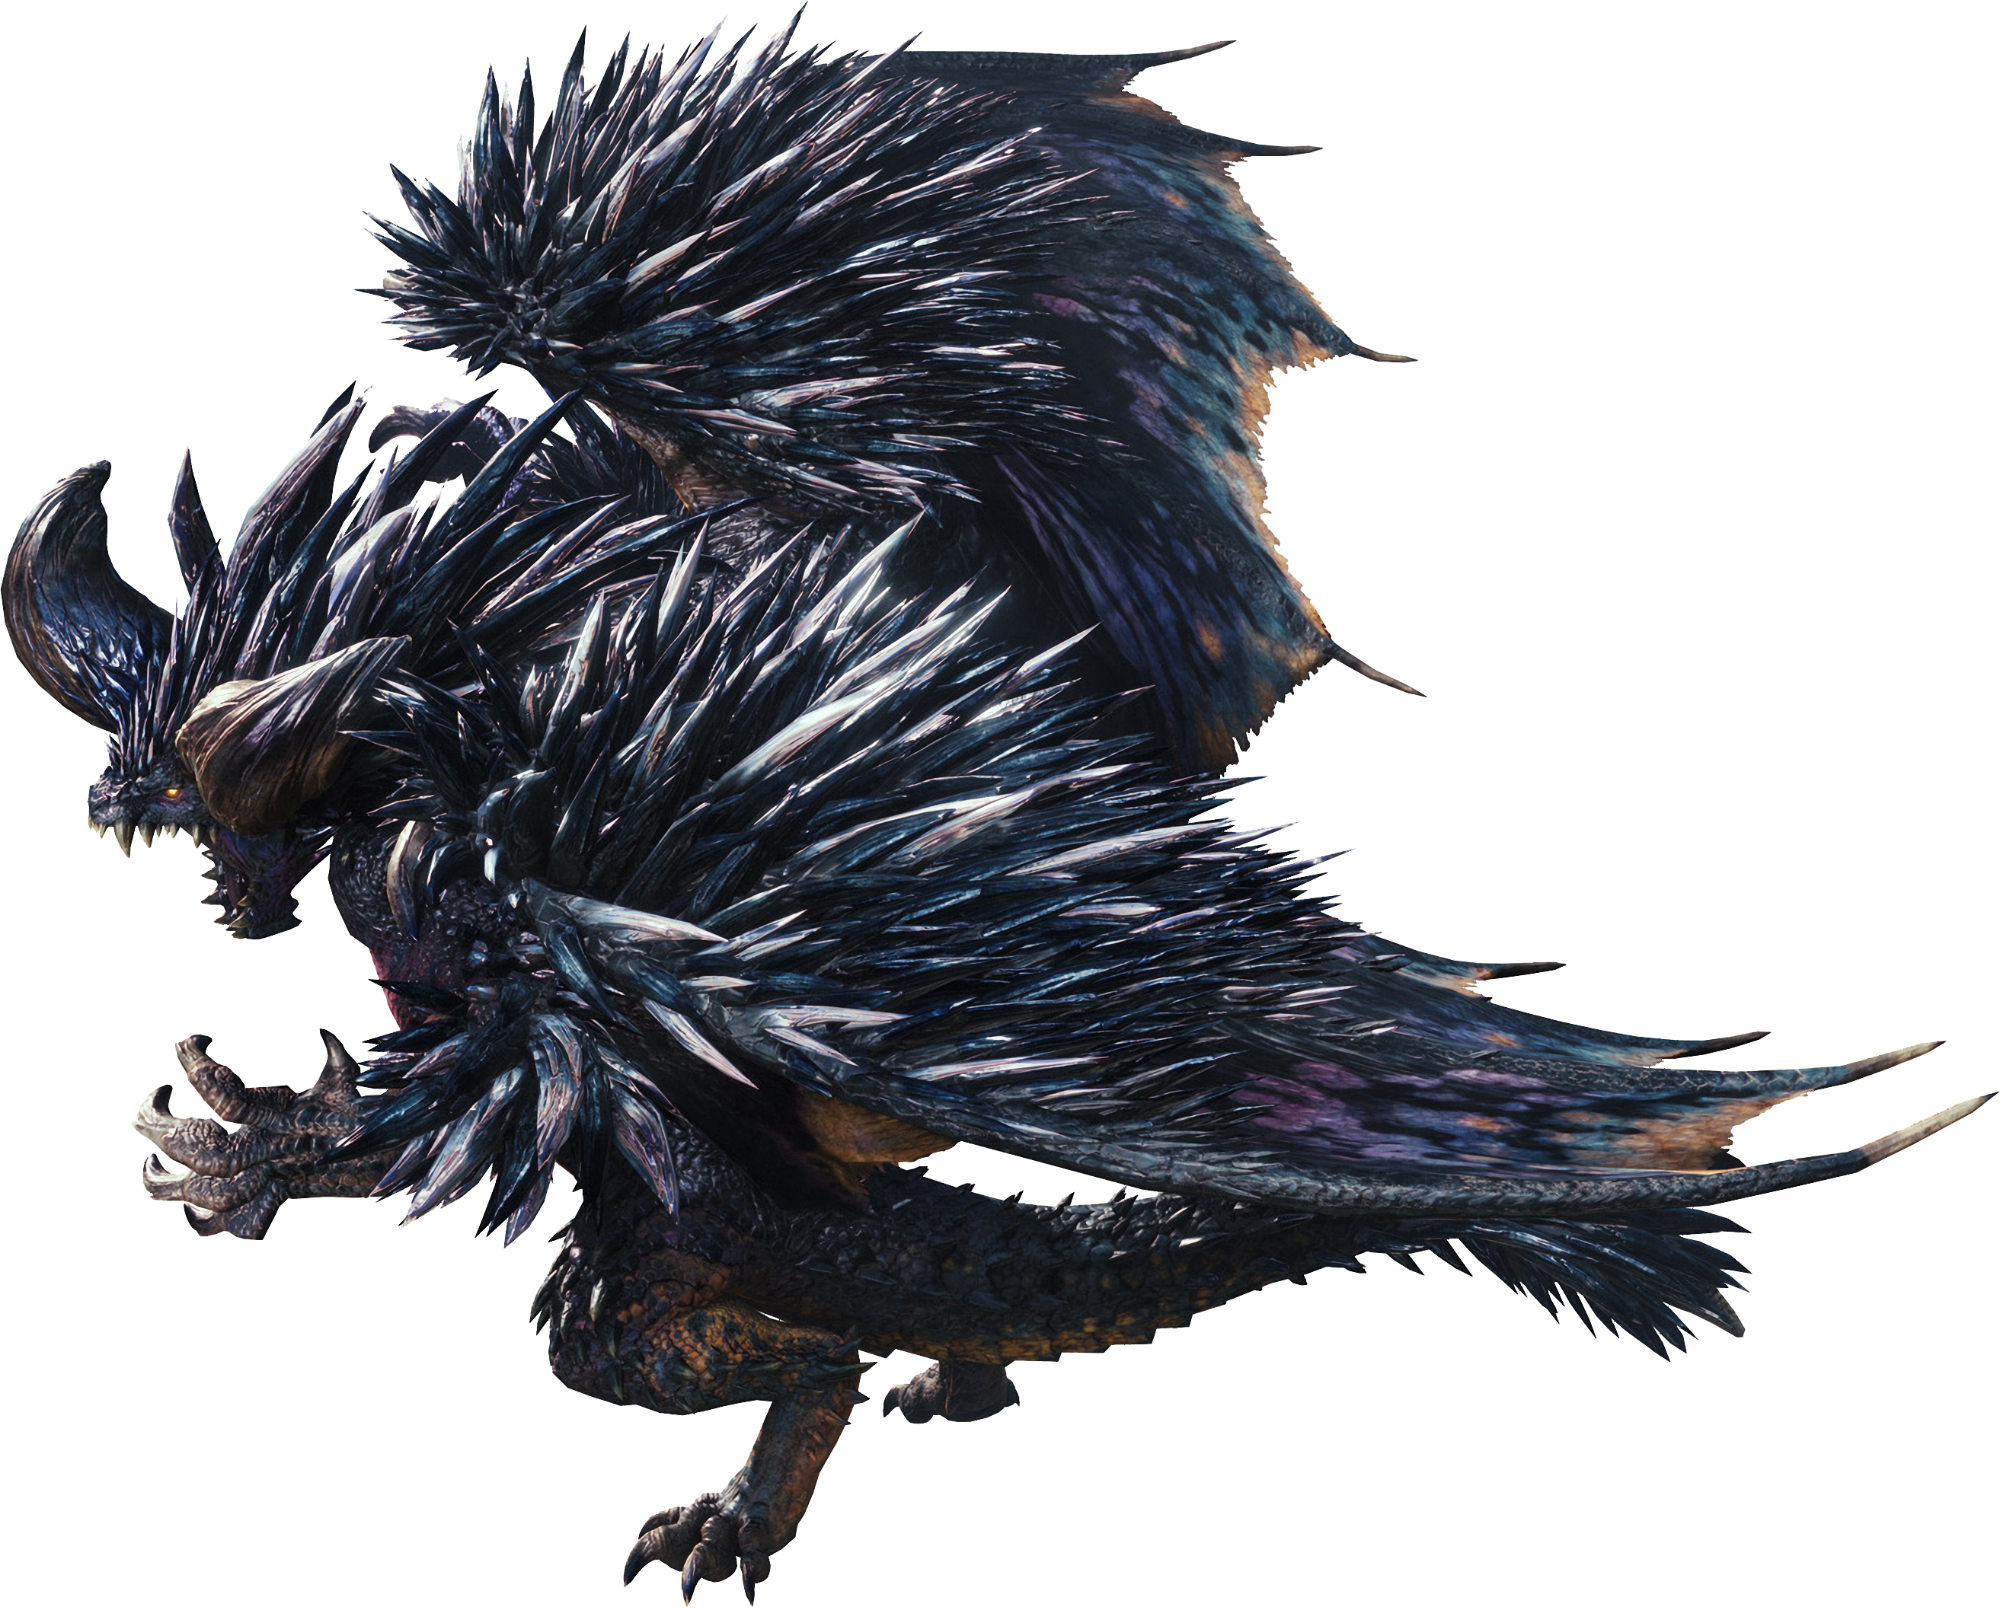 Discuss Everything About Monster Hunter Wiki Fandom Place this figure in your room so you can view and appreciate the almighty shara ishvalda whenever you like! monster hunter wiki